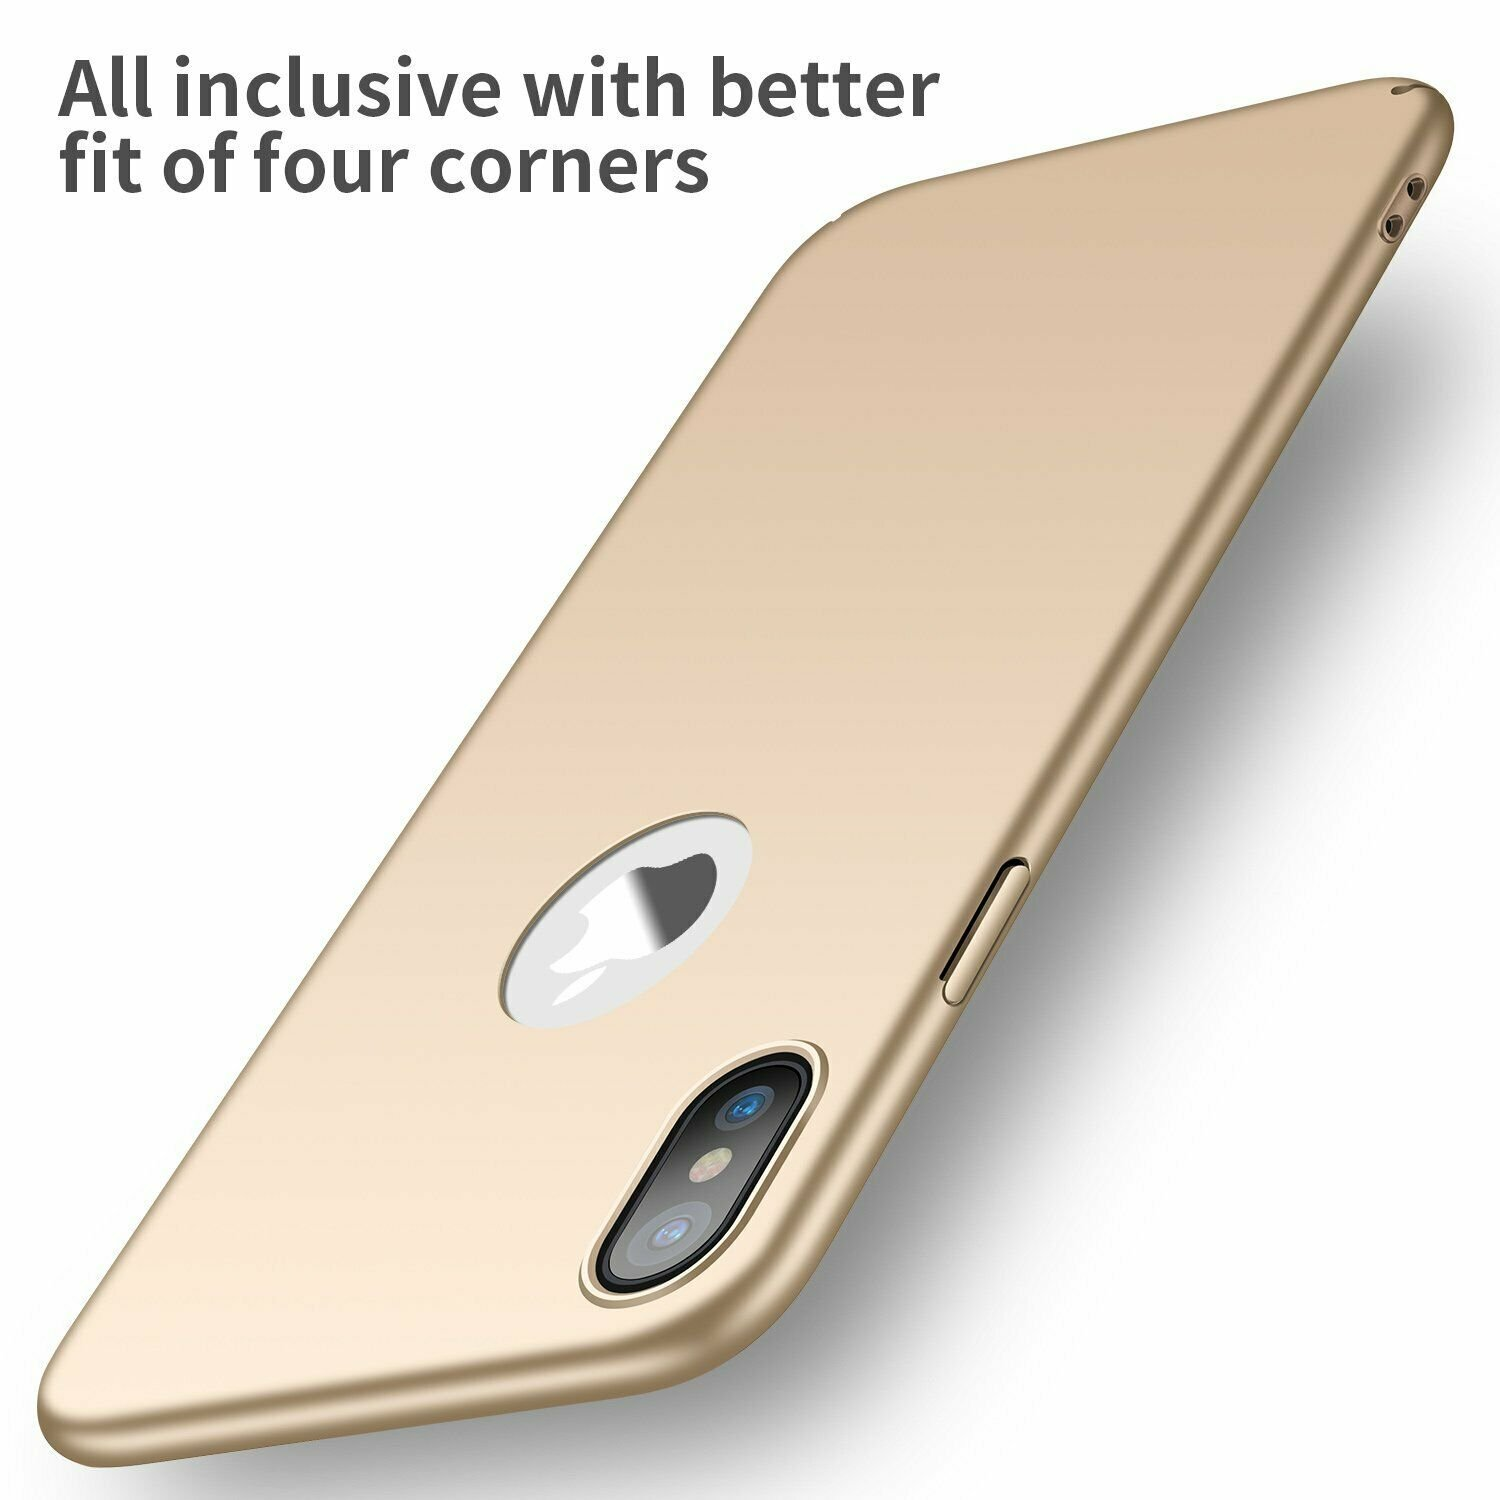 Case-Thin-Hard-Cover-Tempered-Glass-Screen-Protector-For-iPhone-X-XR-XS-Max thumbnail 16